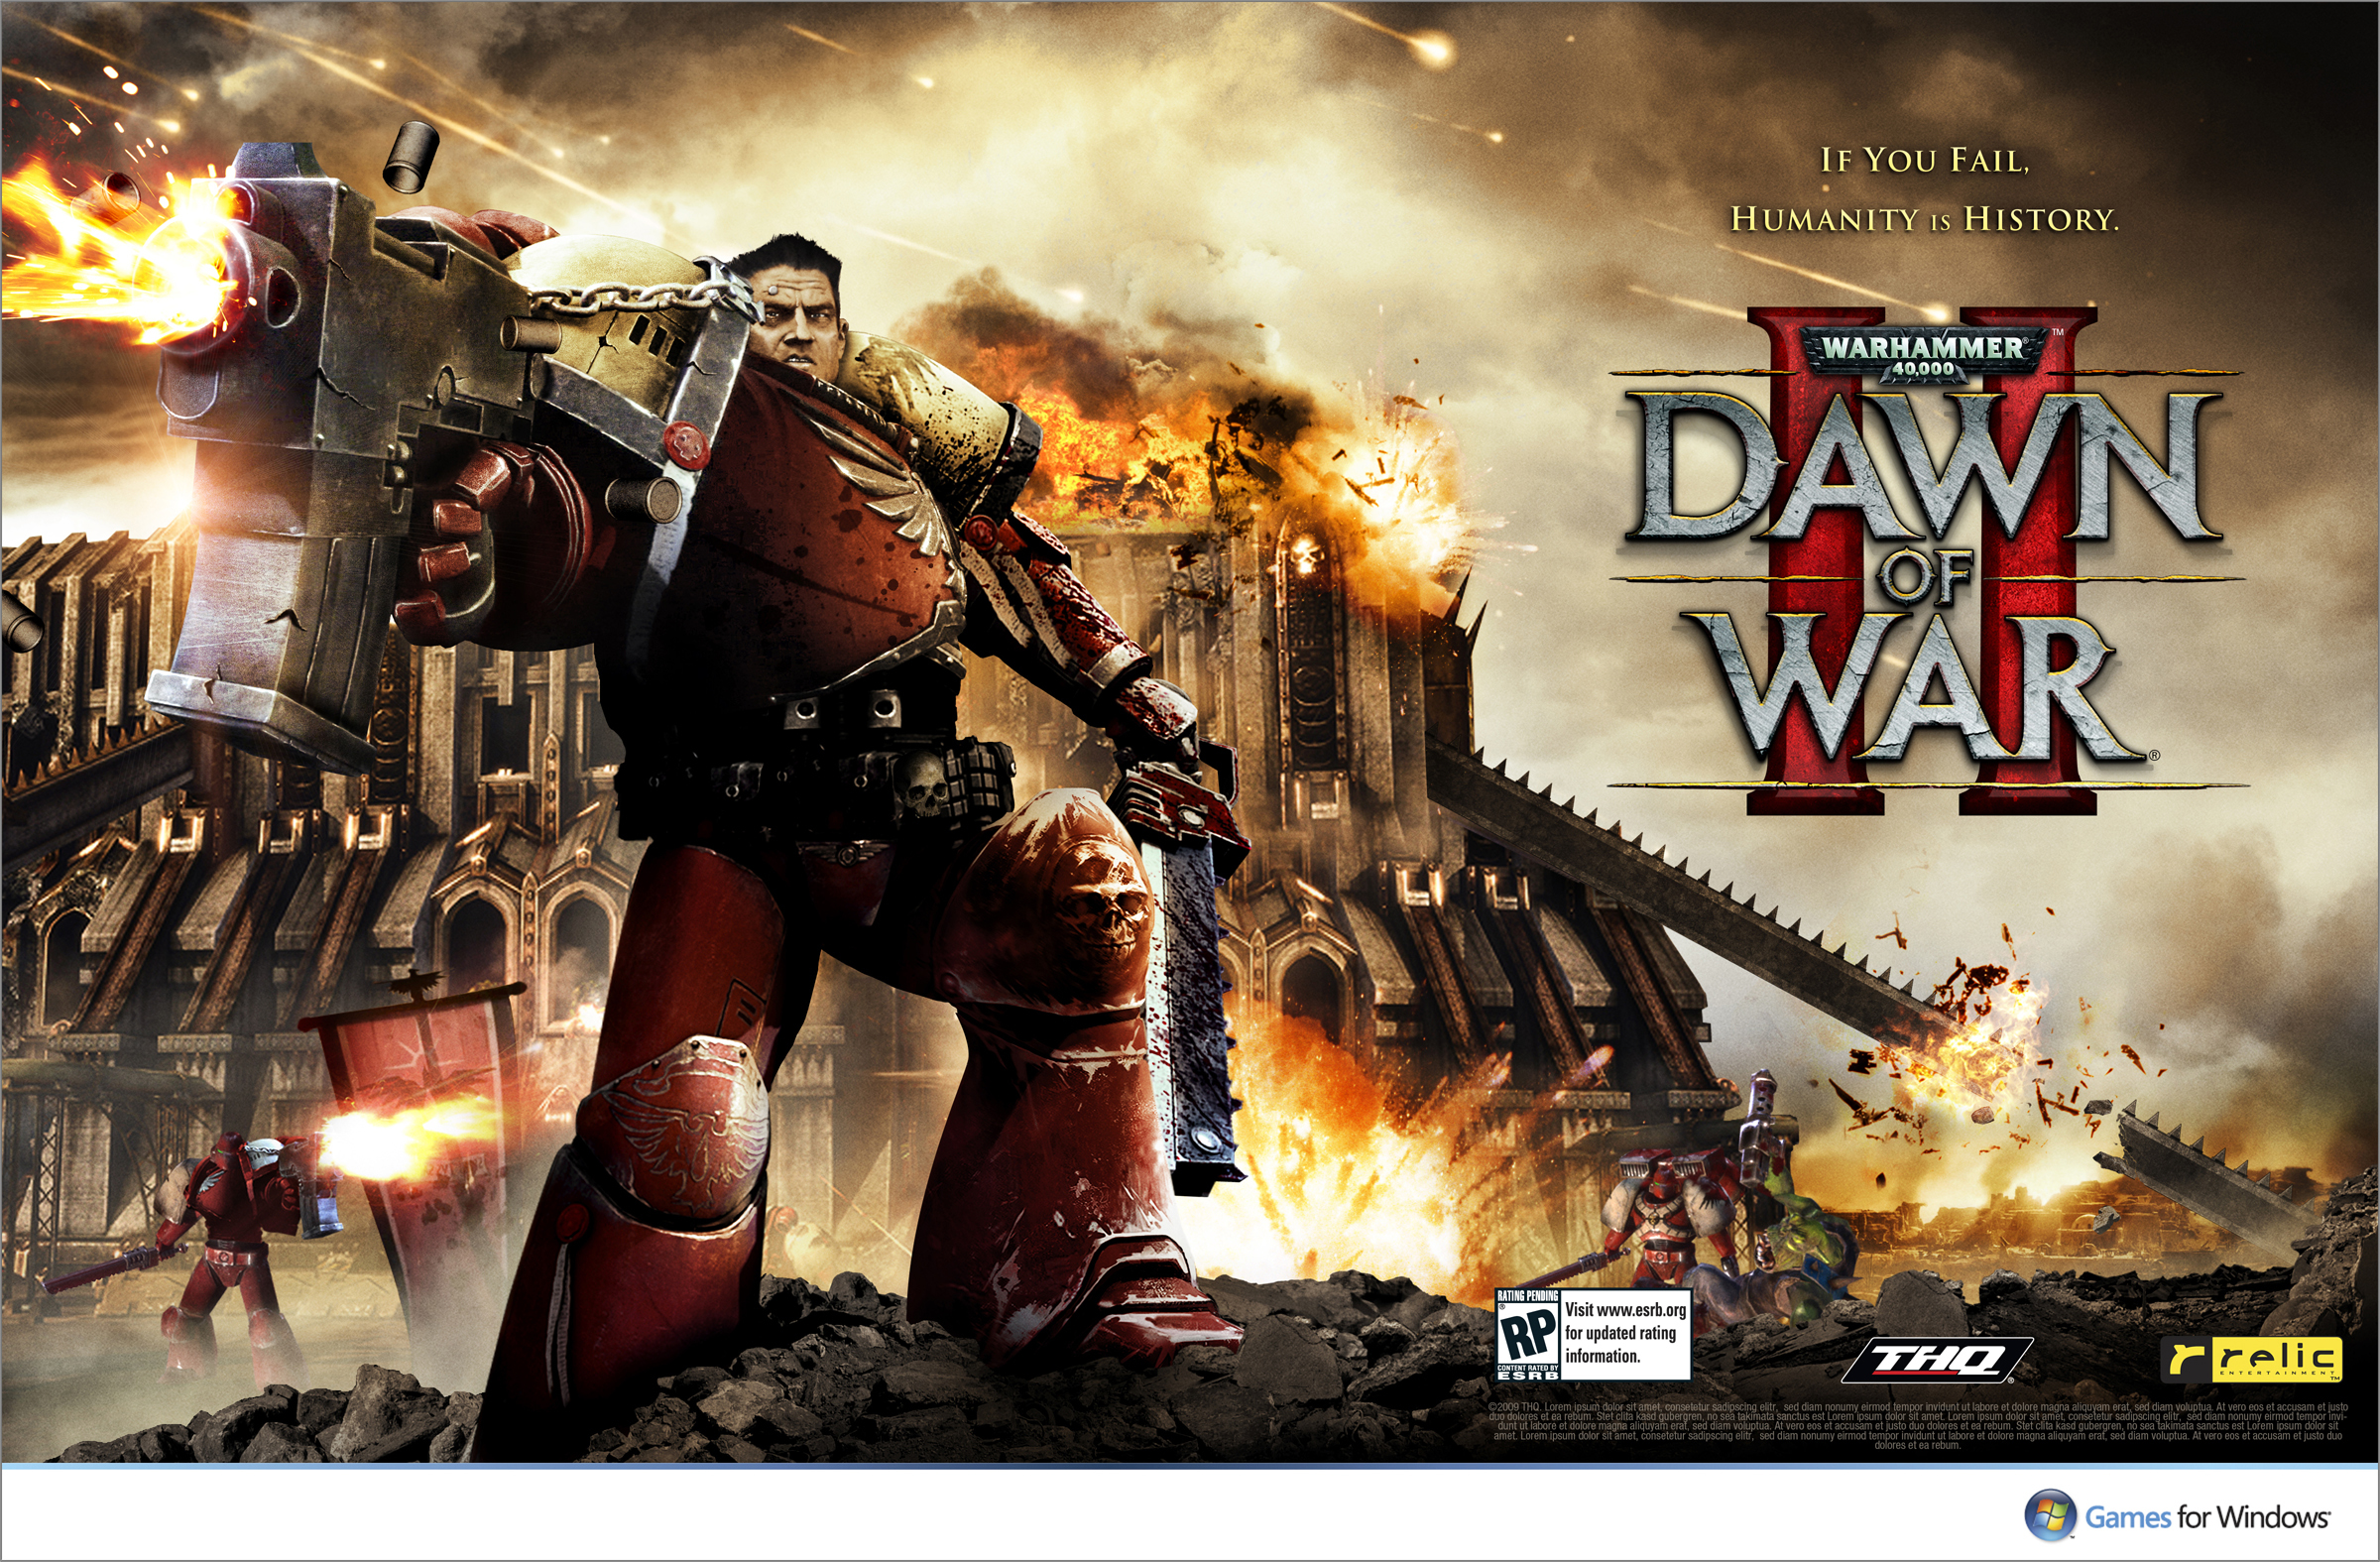 thq dowii sprd v6 HD Wallpaper